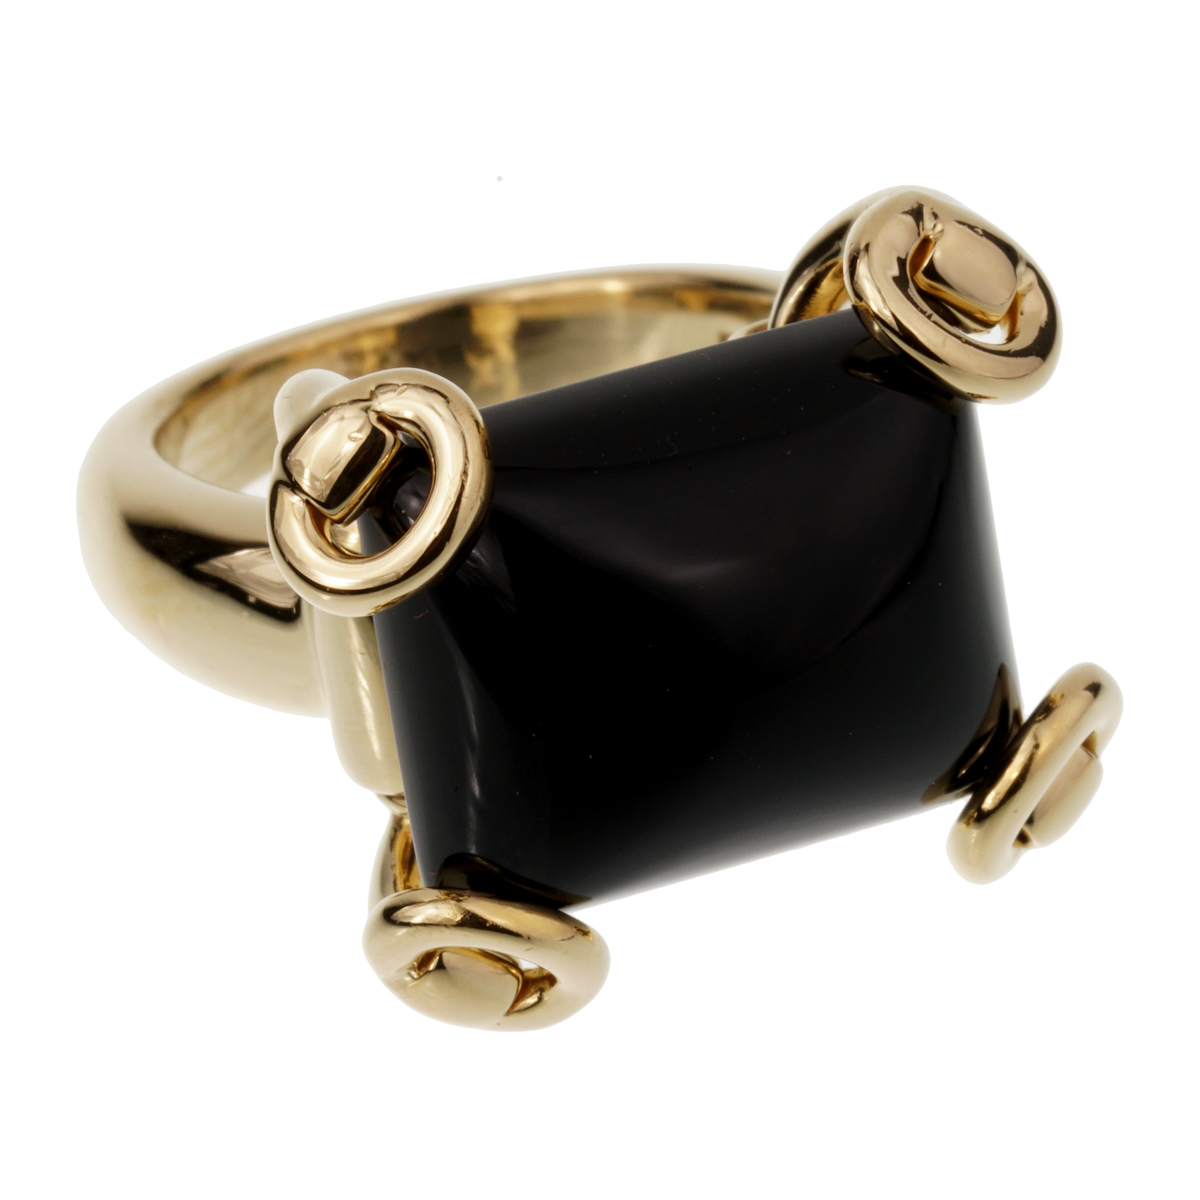 Gucci Horsebit Onyx Yellow Gold Cocktail Ring - Gucci Jewelry